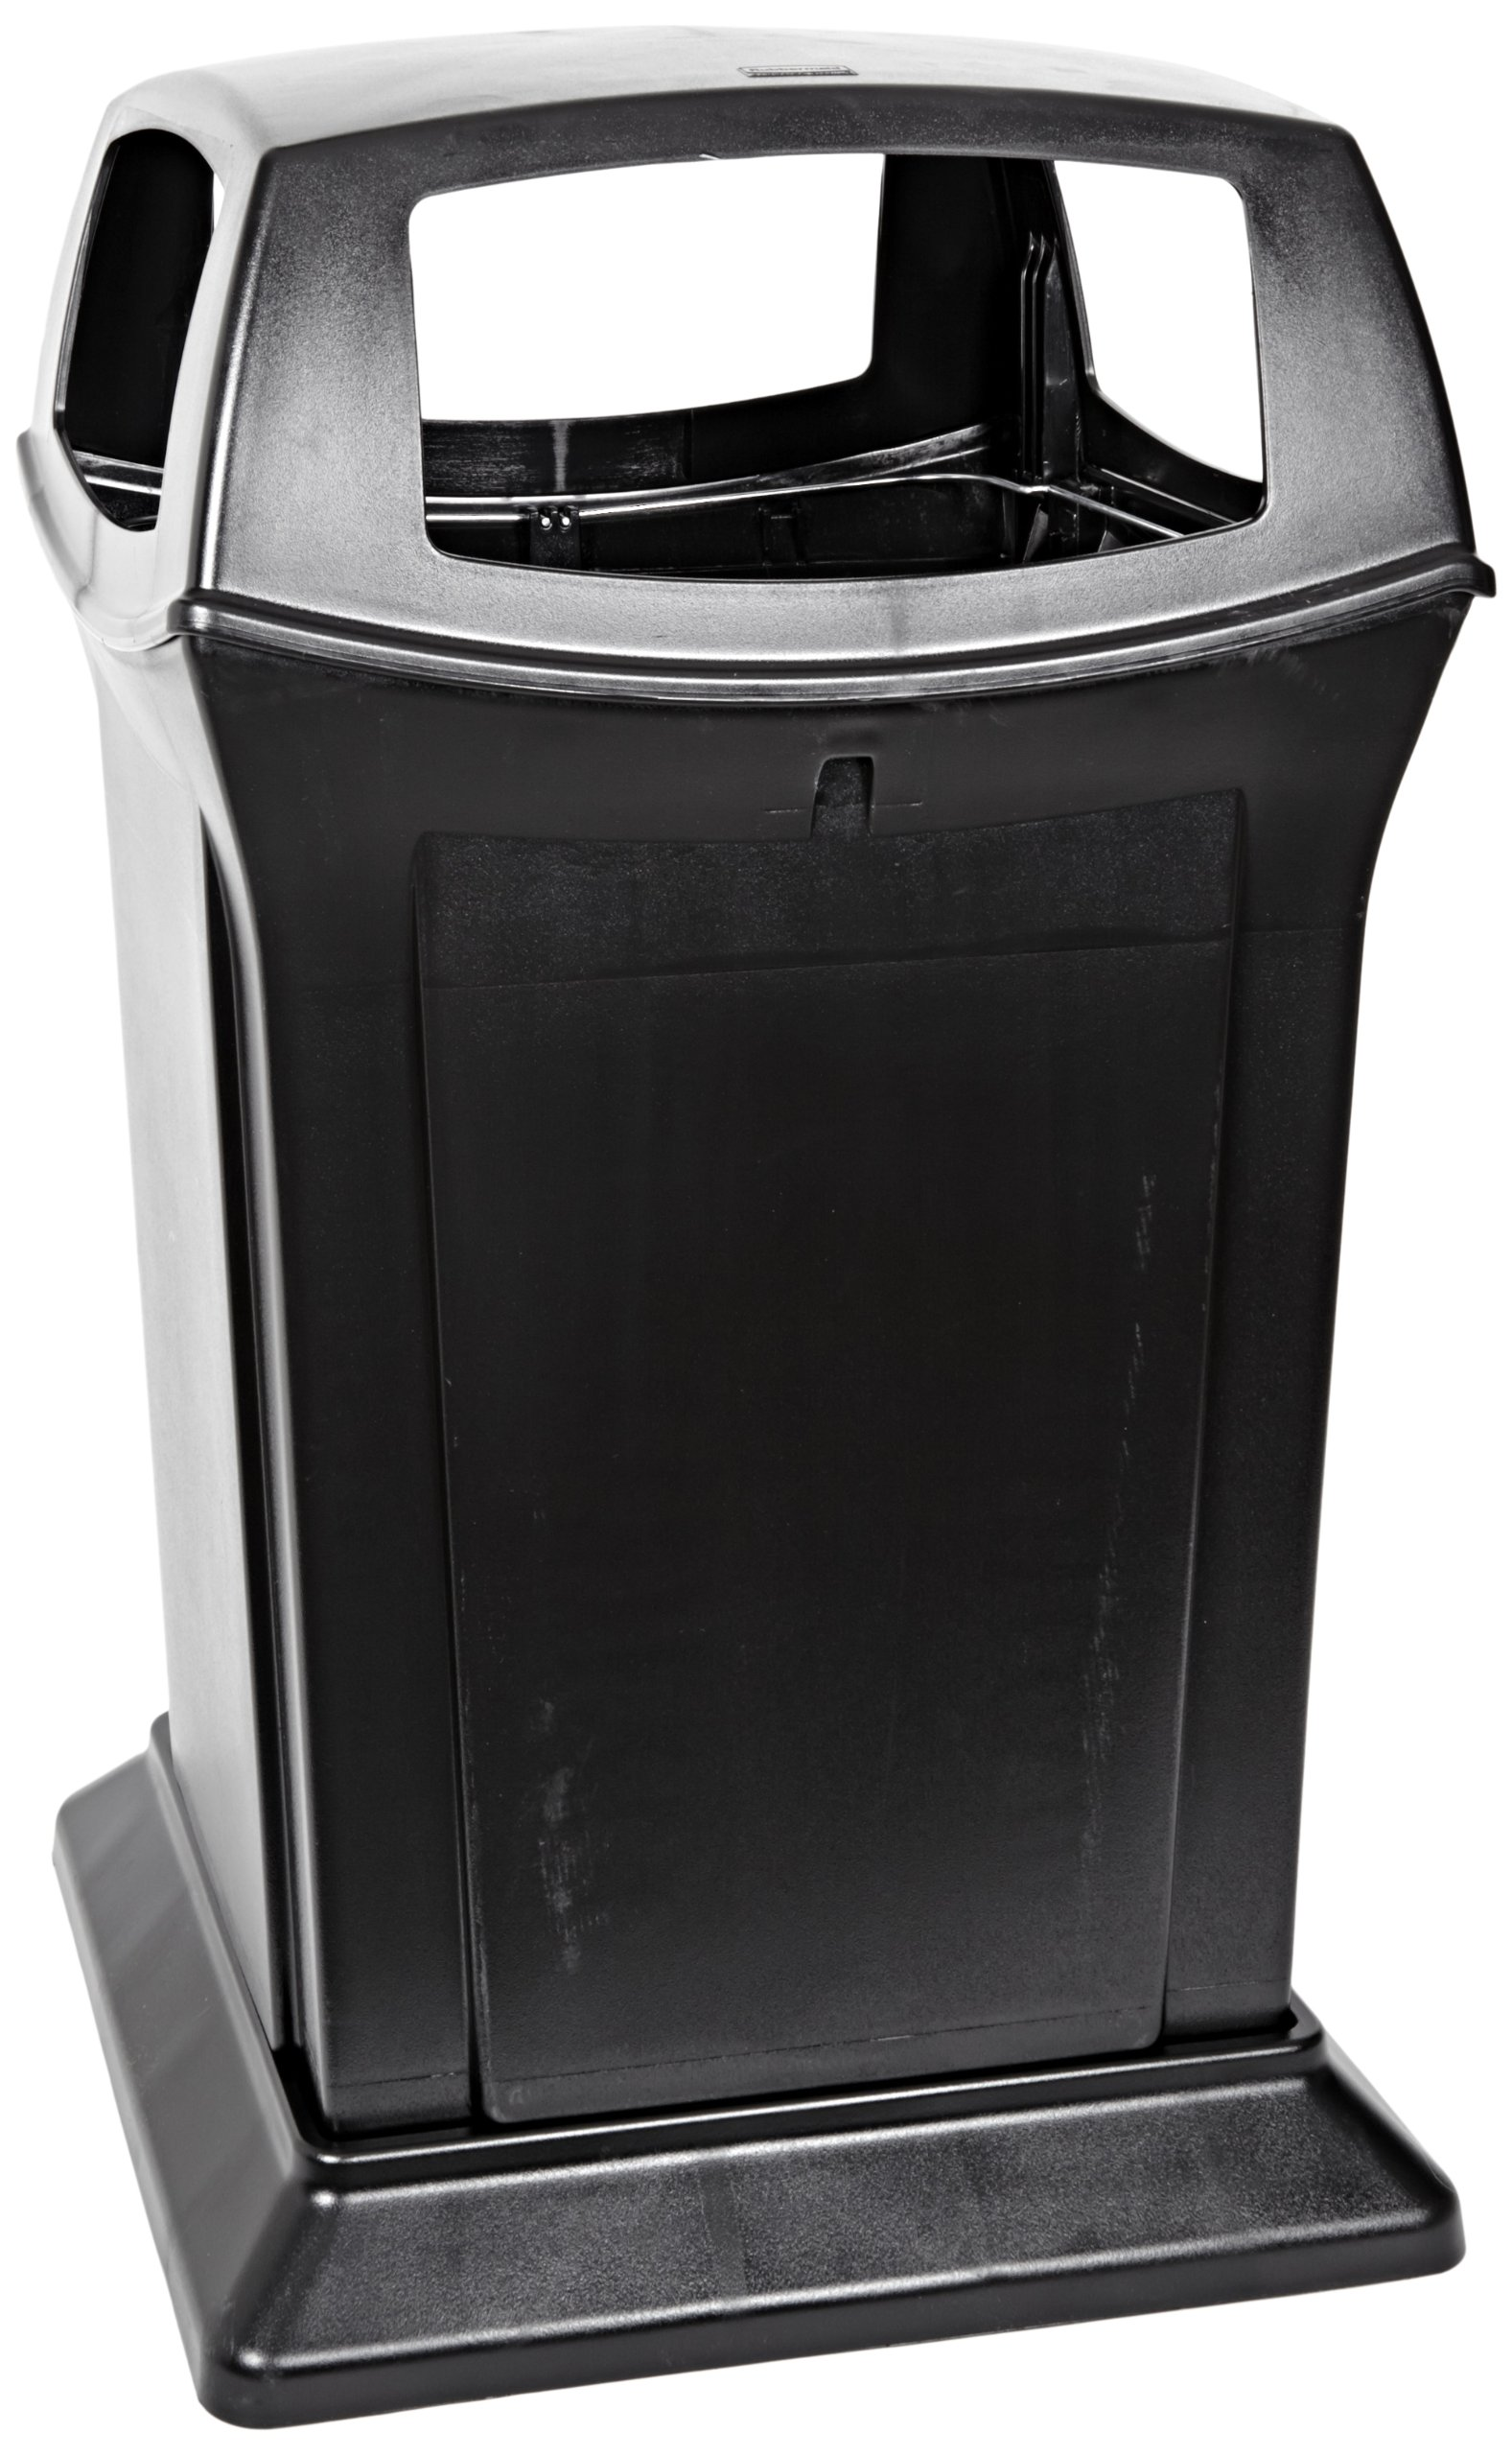 Rubbermaid Commercial Ranger Trash Can, 45 Gallon, Black, FG917388BLA